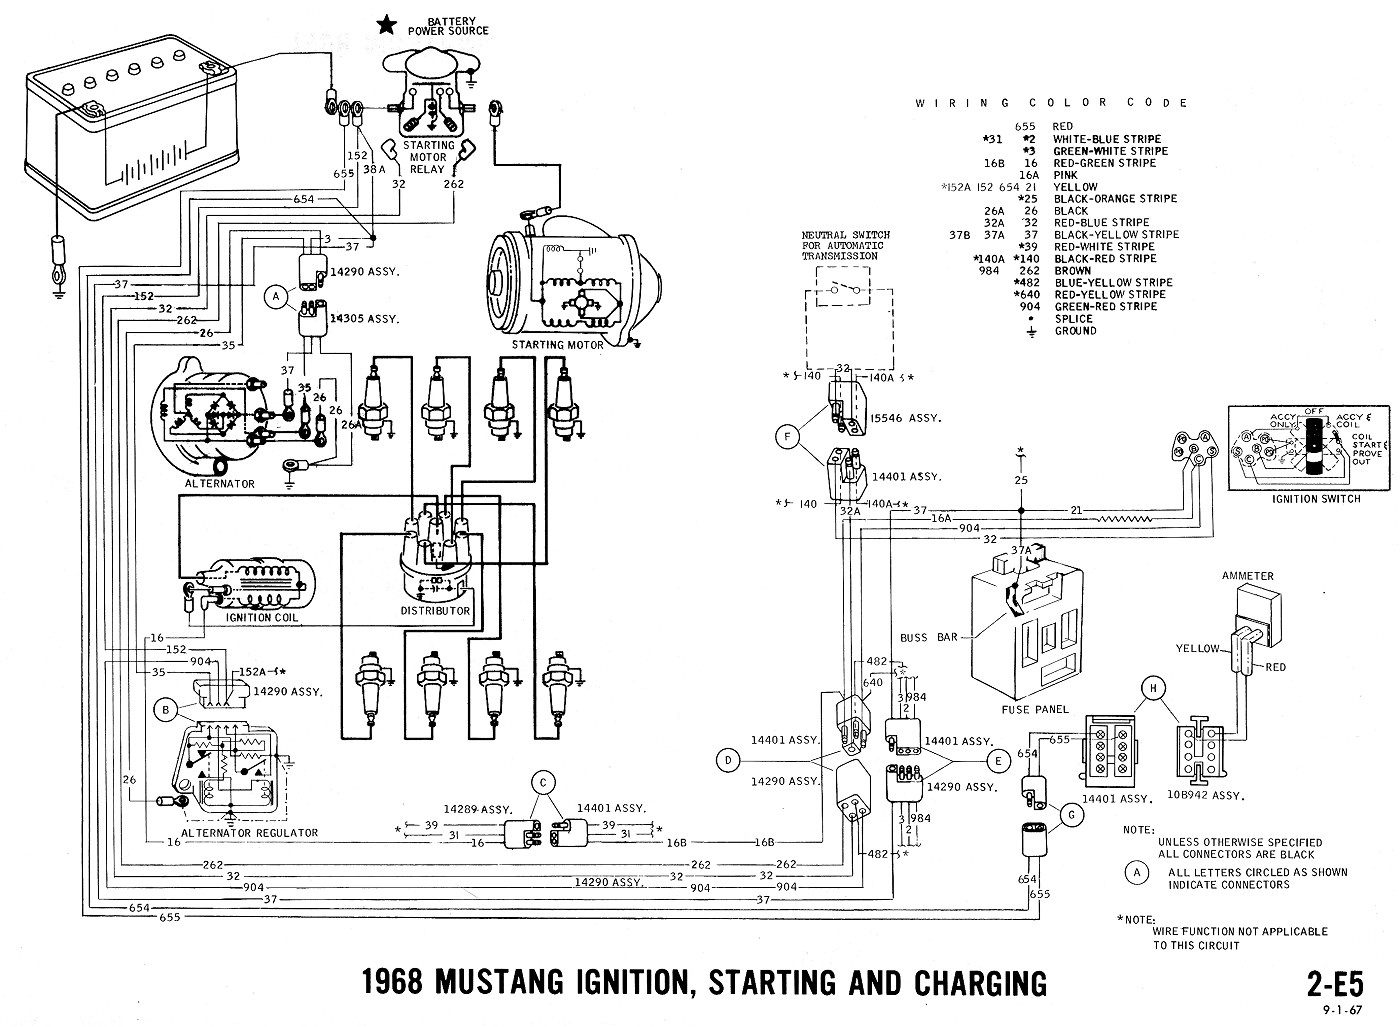 1968 mustang wiring diagram rear window defrost detailed rh antonartgallery  com 1968 Camaro Starter Wiring Diagram